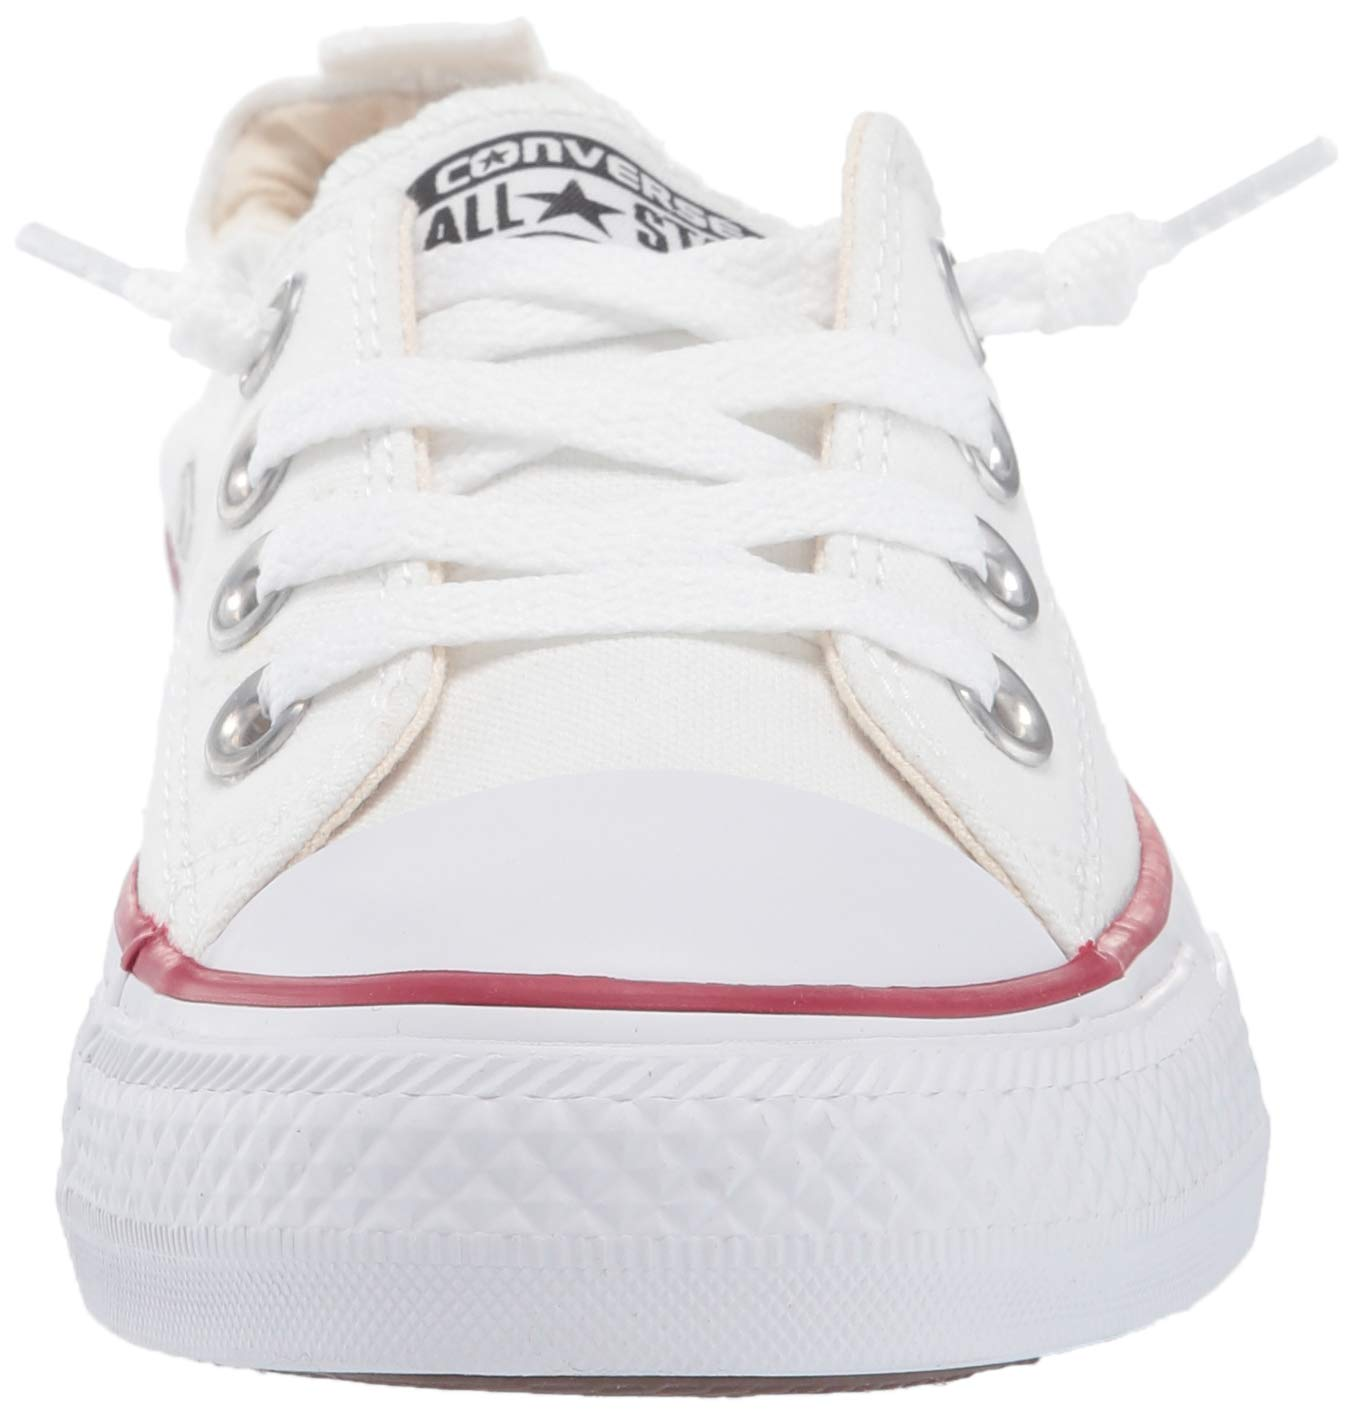 Converse Chuck Taylor All Star Shoreline White Lace Up